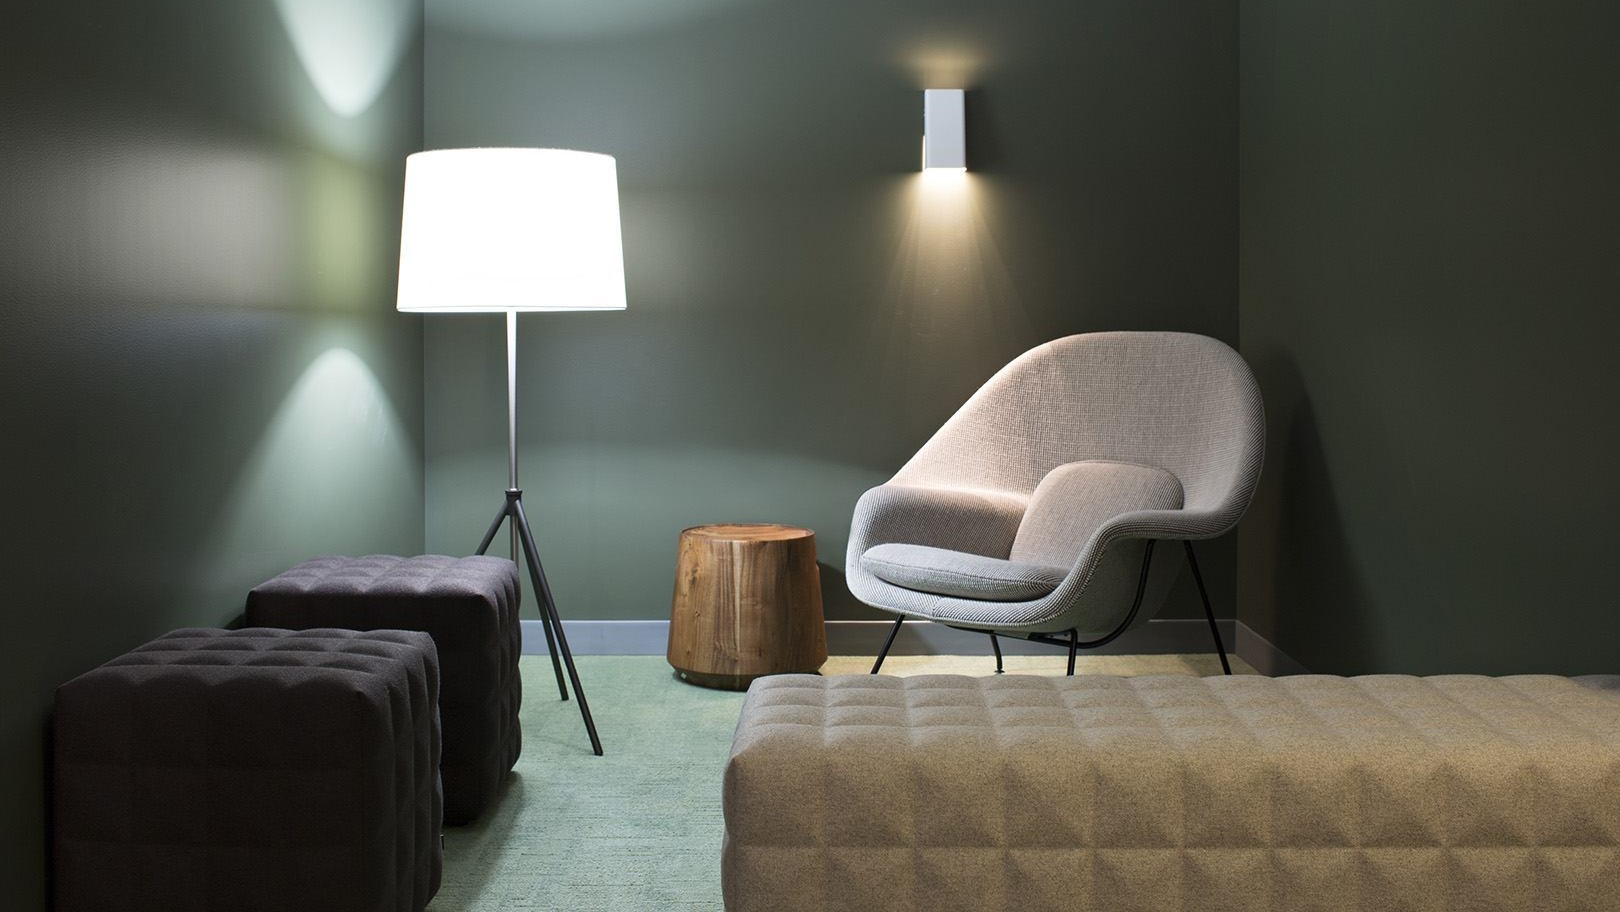 A dark green small room with a Knoll Womb chair, lamp, and cube shaped lounge furniture